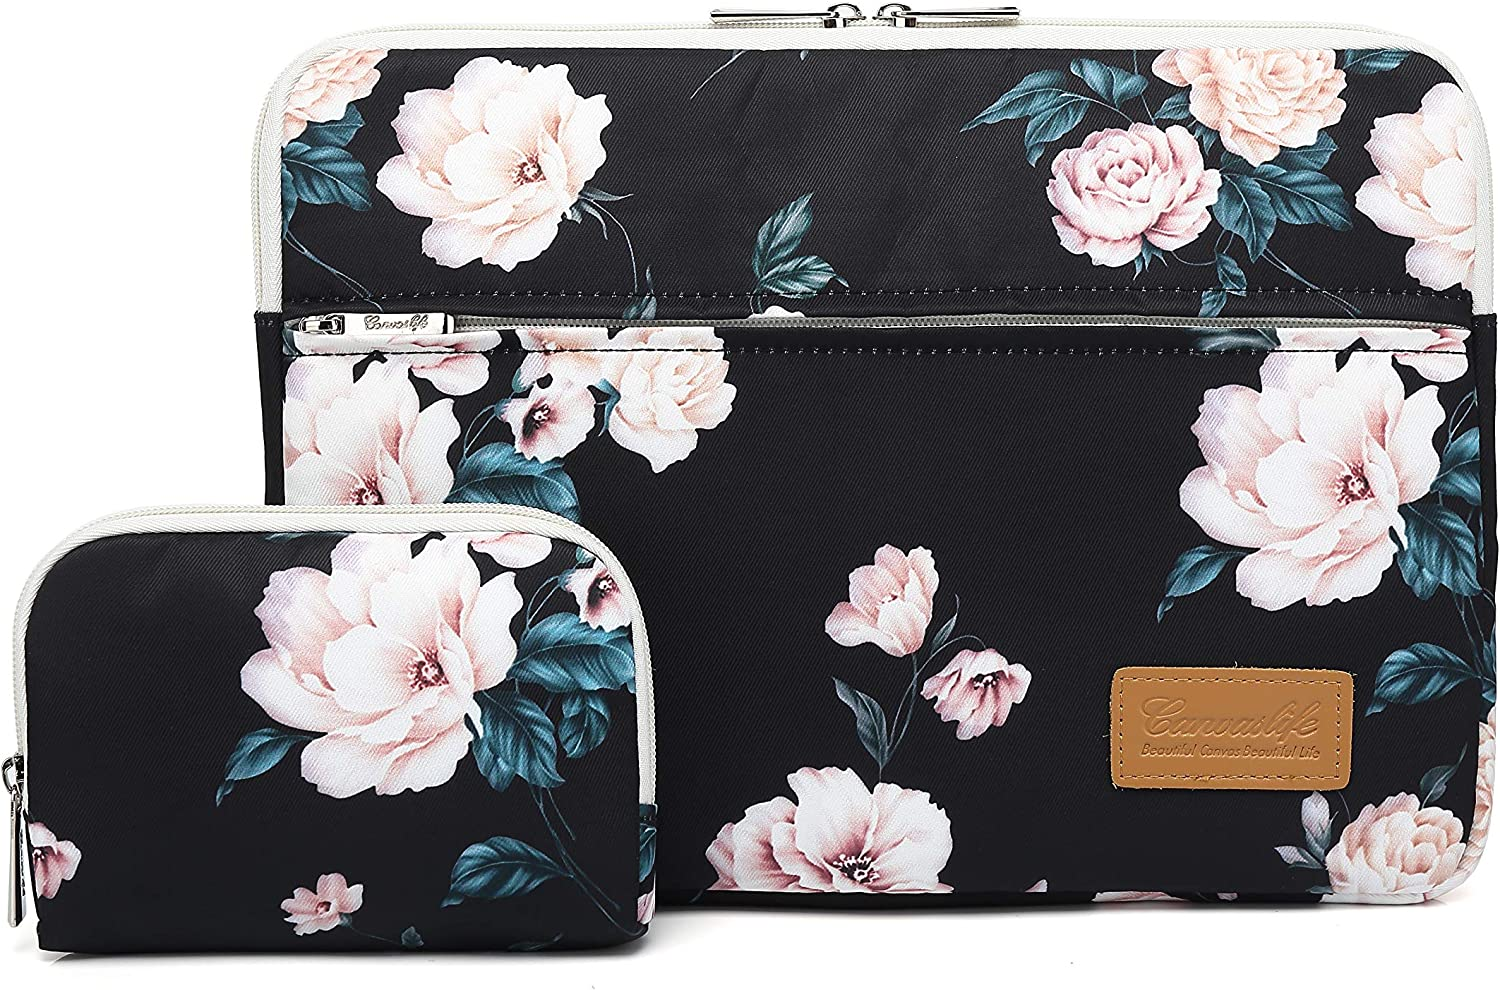 Canvaslife Peony Pattern 360 Degree Protective 13 inch Canvas Laptop Sleeve with Pocket 13 Inch 13.3 Inch Laptop Case